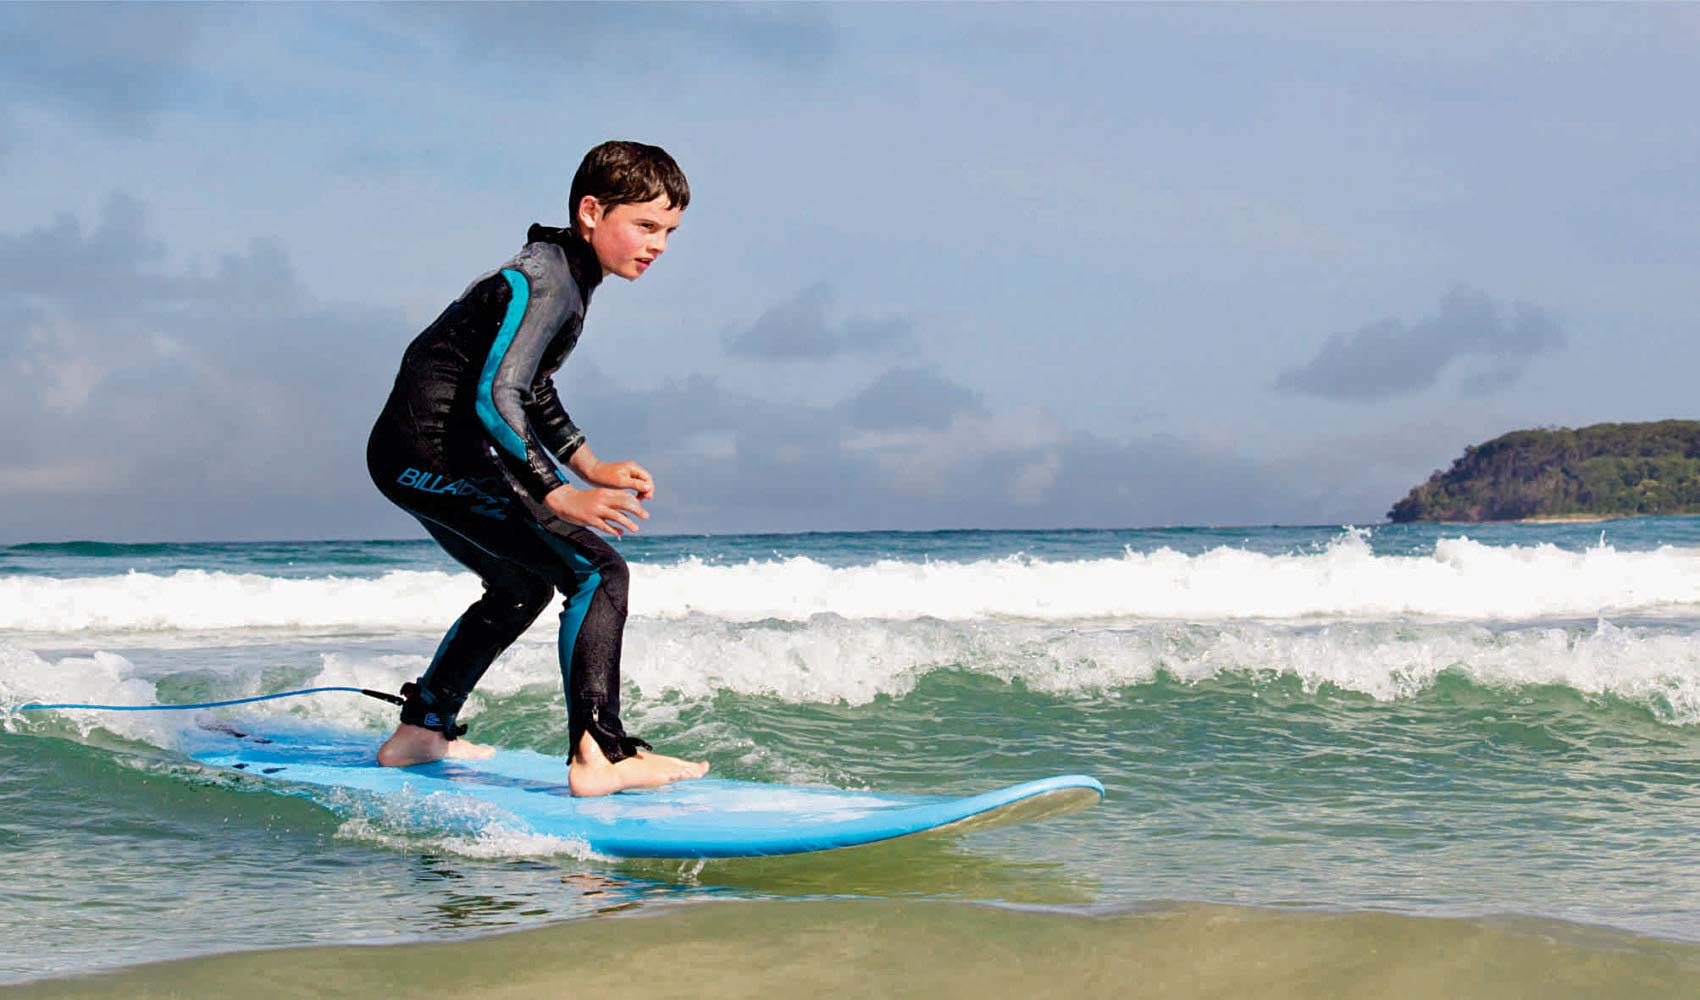 private surfing lessons south coast nsw